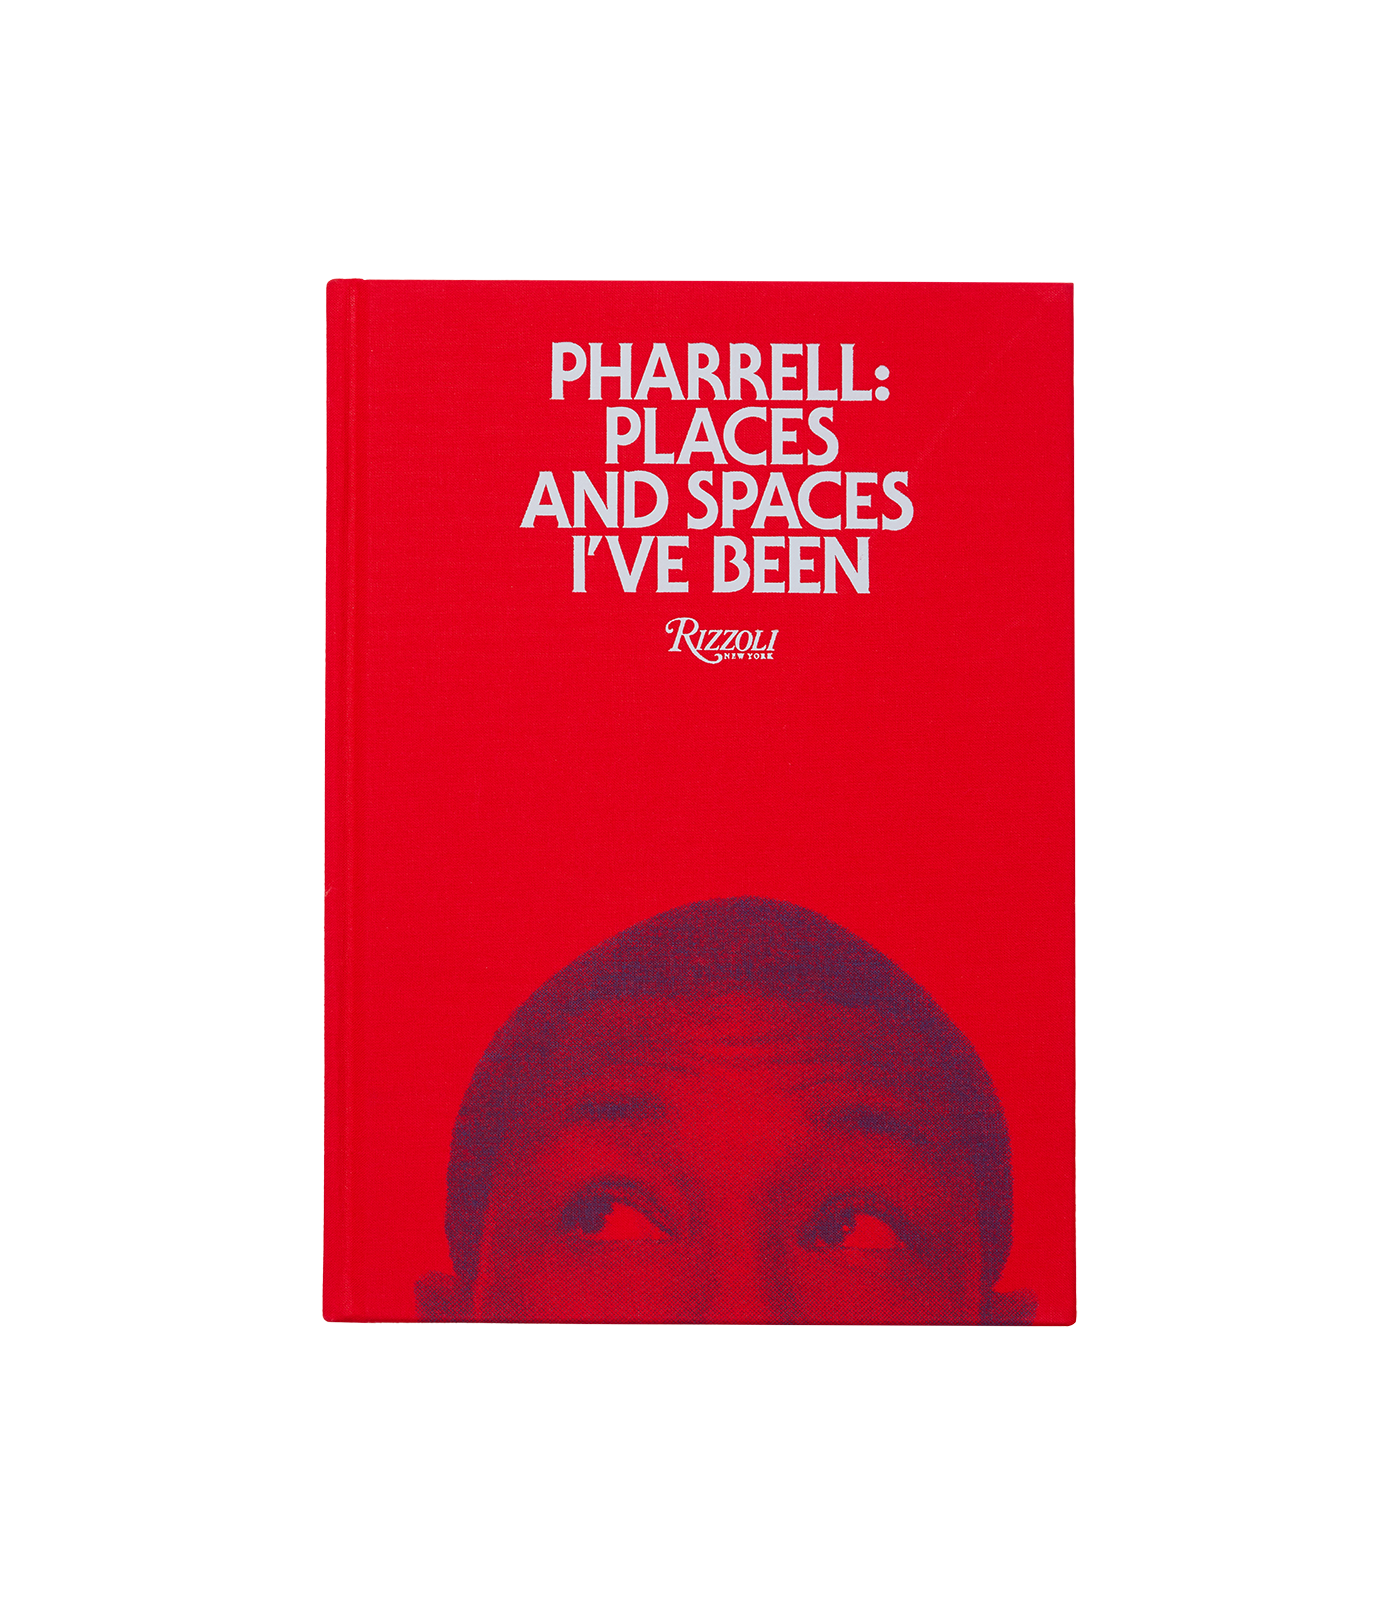 Pharrell: Places and Spaces I've Been Book - Red